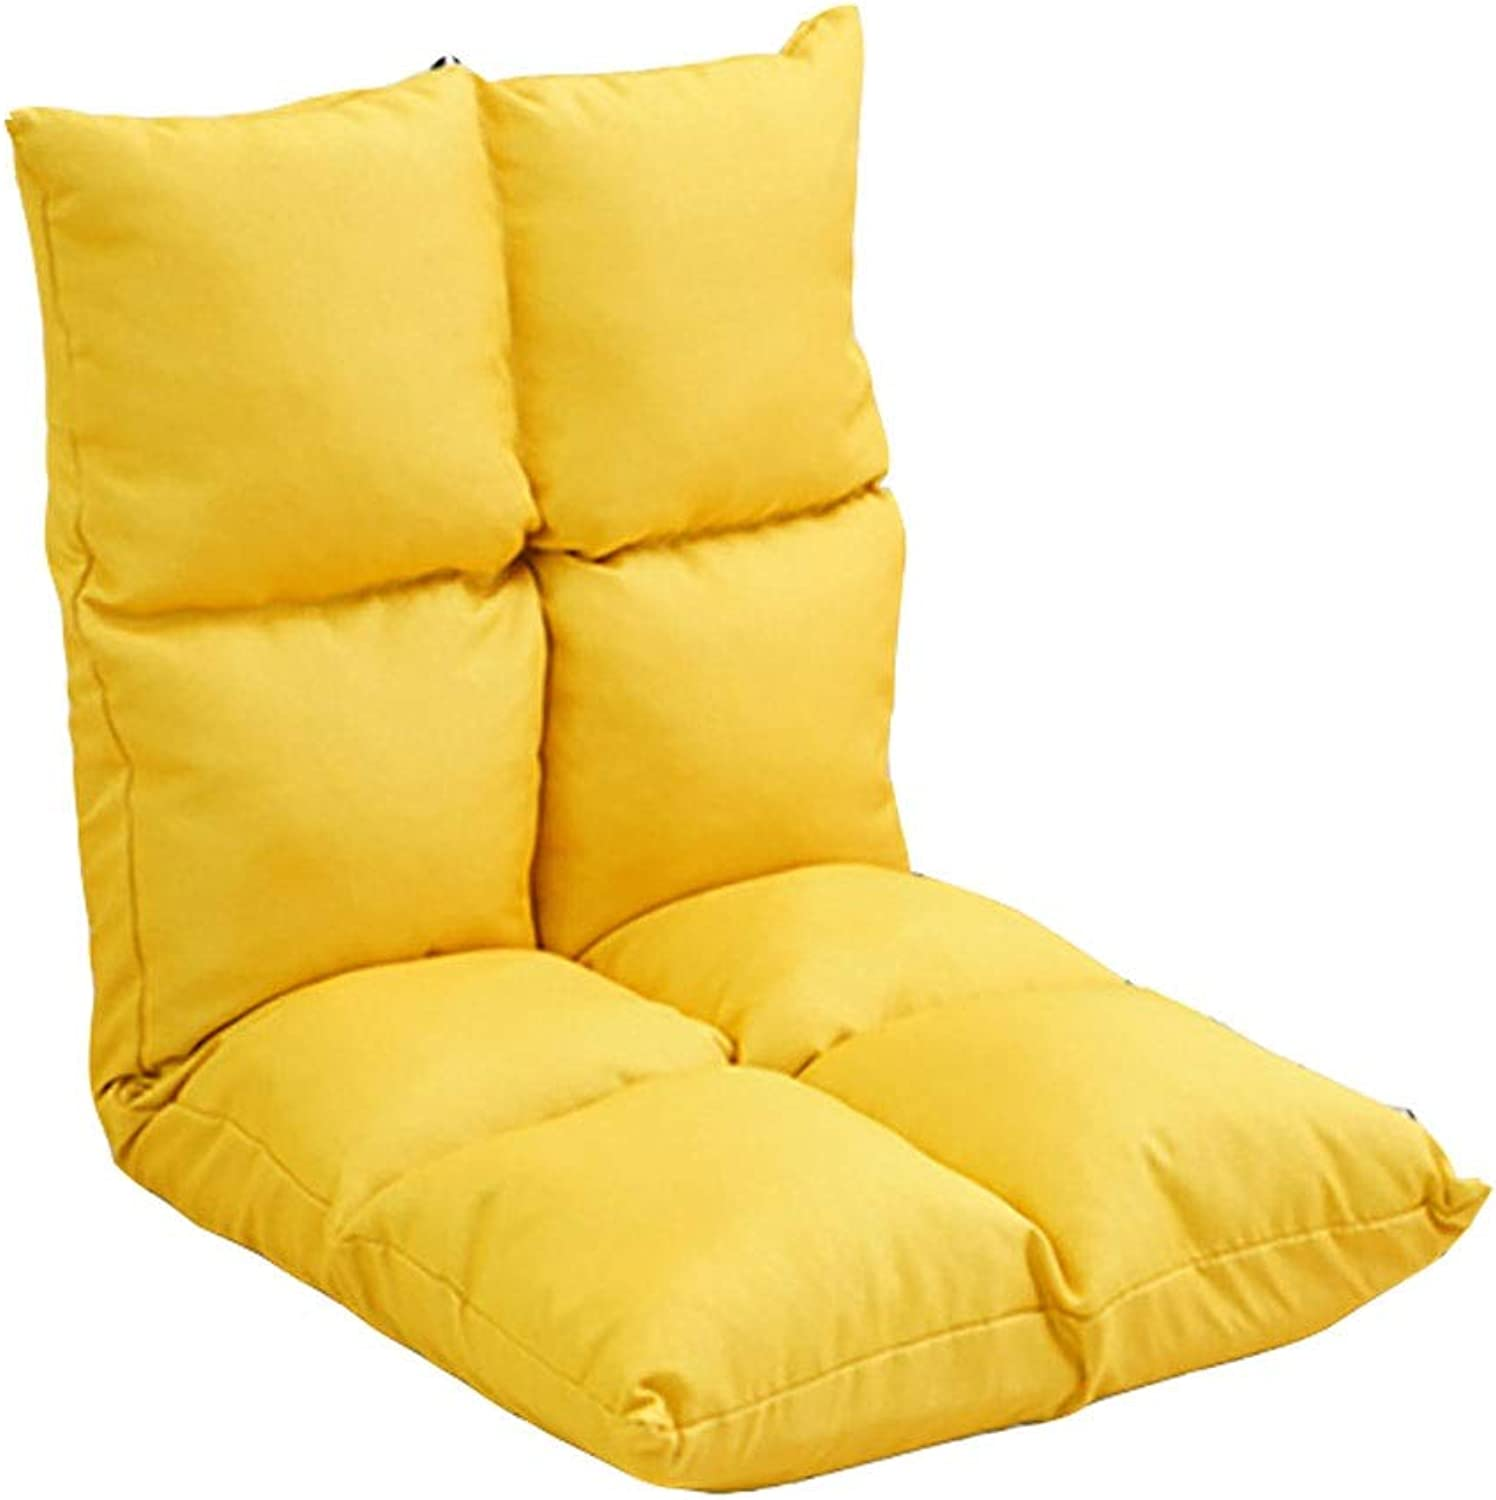 Lazy Folding Chair Without Legs Single Back Five-Speed Adjustment Sofa Bay Window Cushion Dormitory Bed Multi-color 102  50  10cm MUMUJIN (color   Yellow)